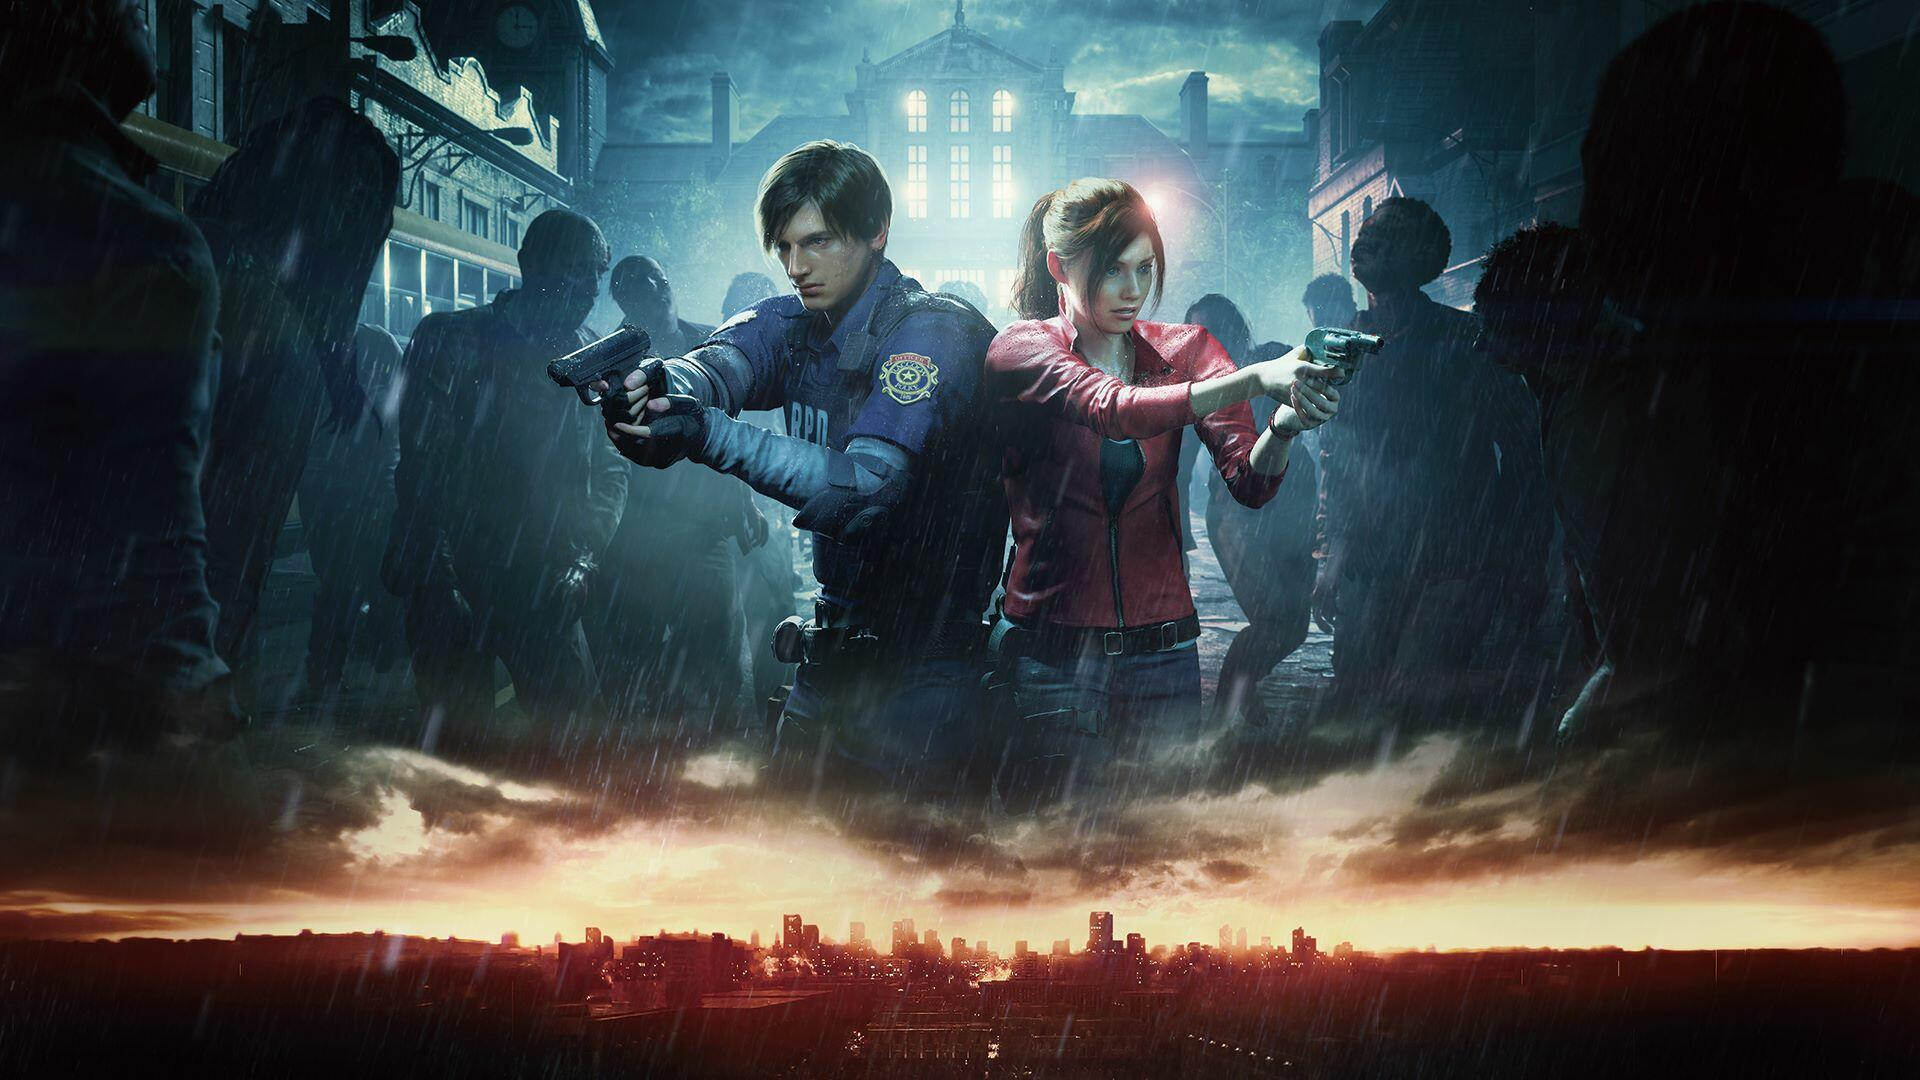 Resident Evil 2 Comes So Close to Finding That Elusive Sweet Spot